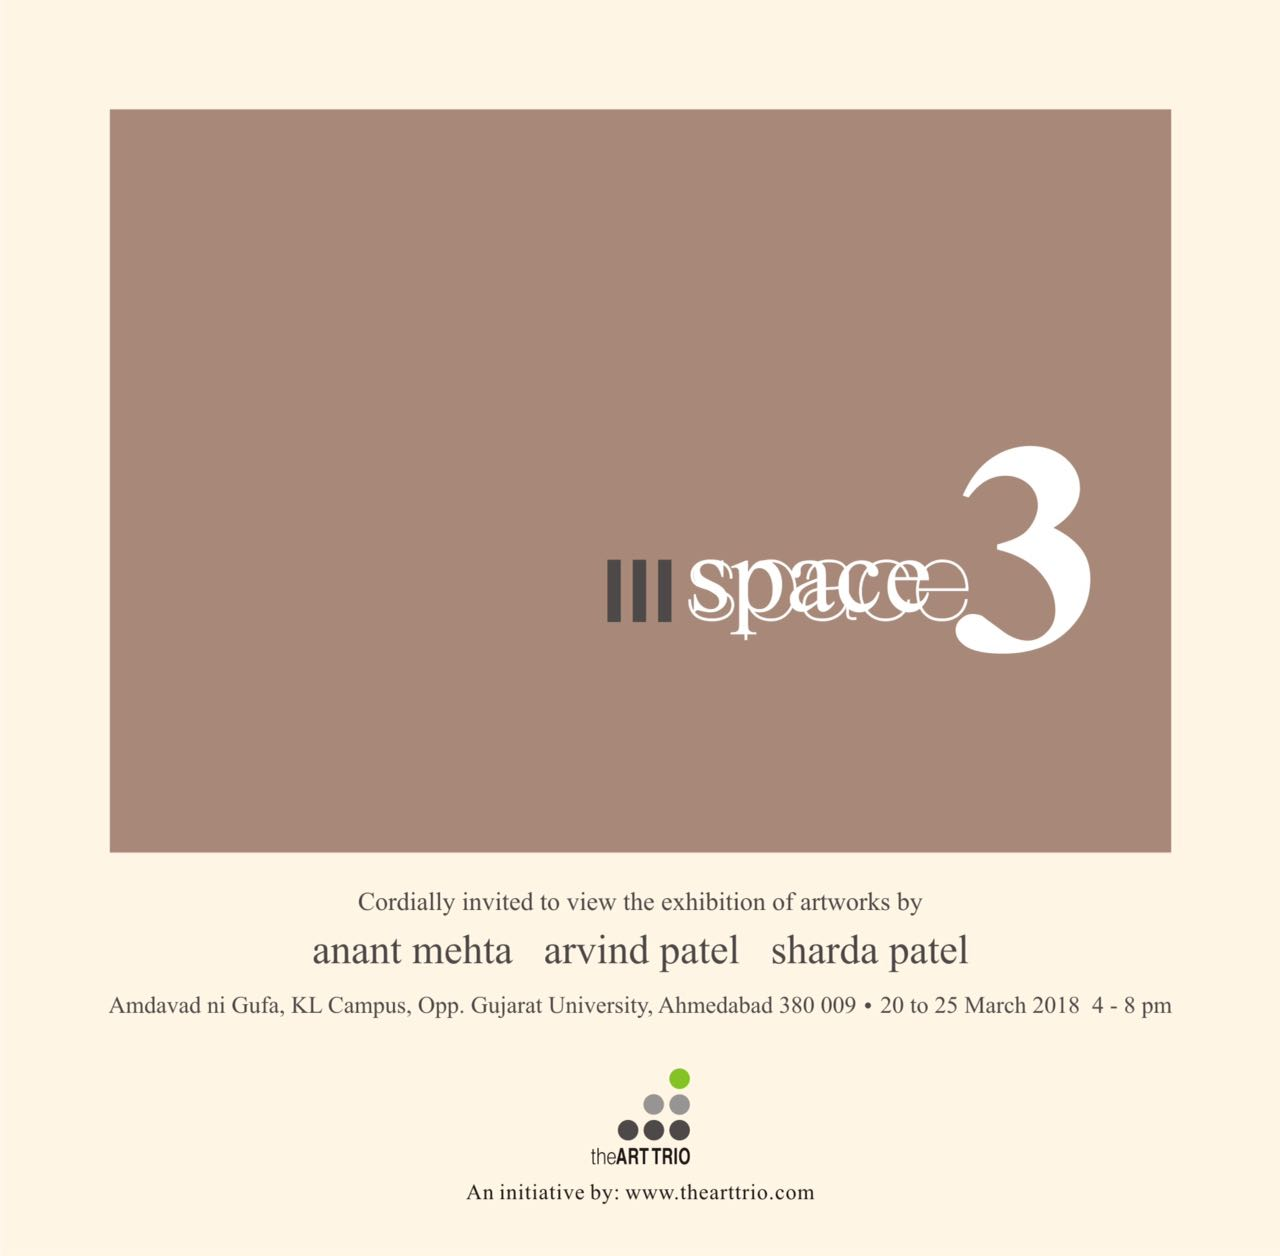 https://creativeyatra.com/wp-content/uploads/2018/03/Space-3-Art-Events-in-Ahmedabad.jpeg